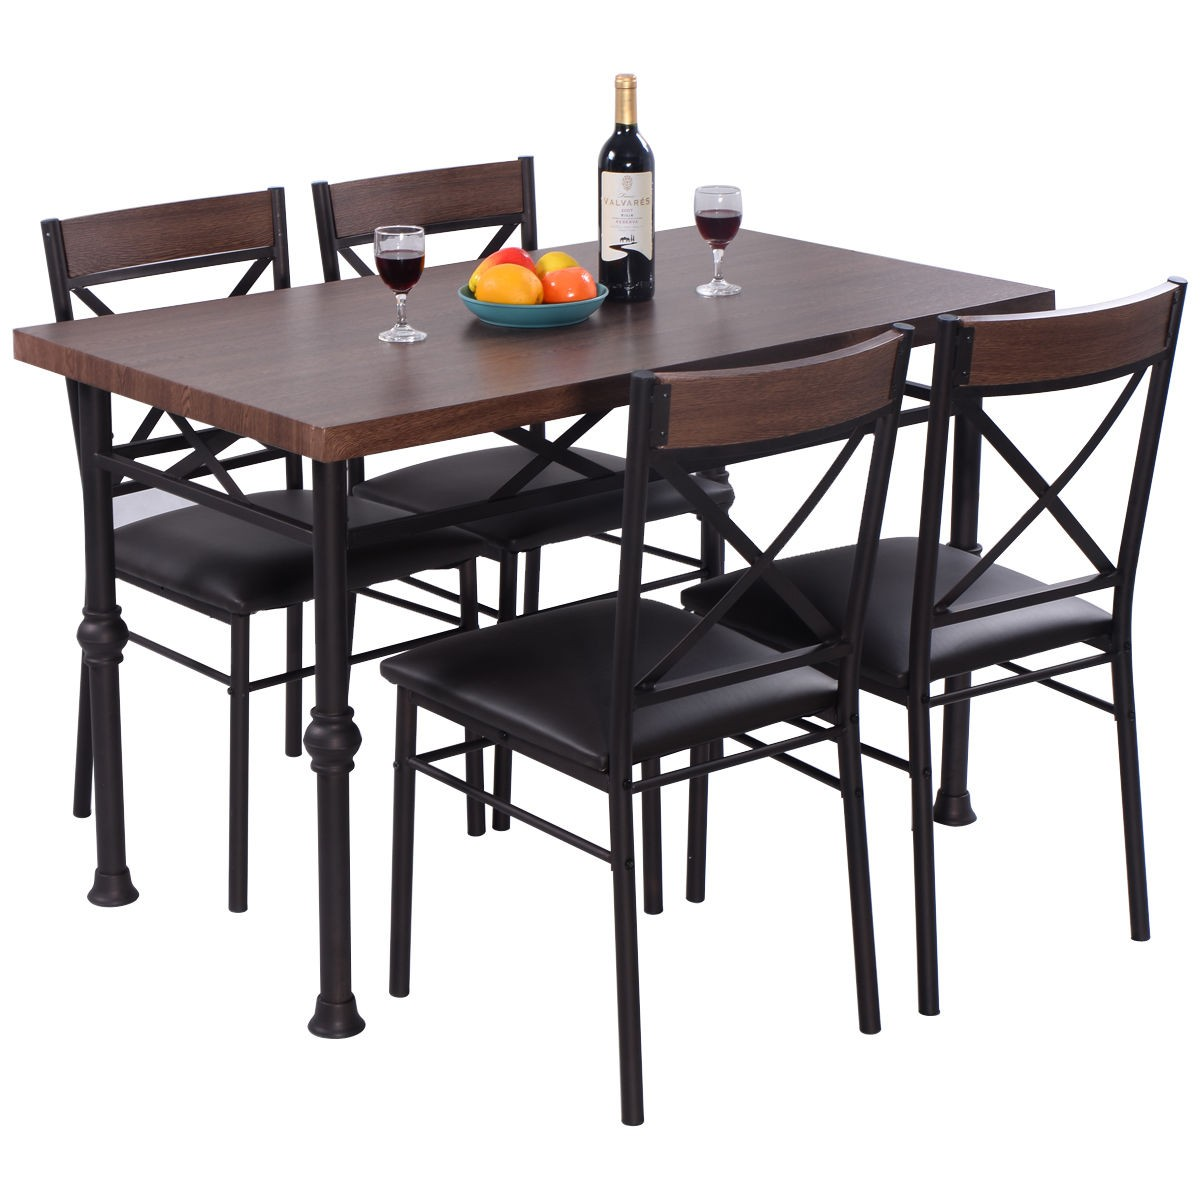 Home 5 Pcs Dining Table And Chairs Set Dining Room Kitchen Breakfast Furnitur